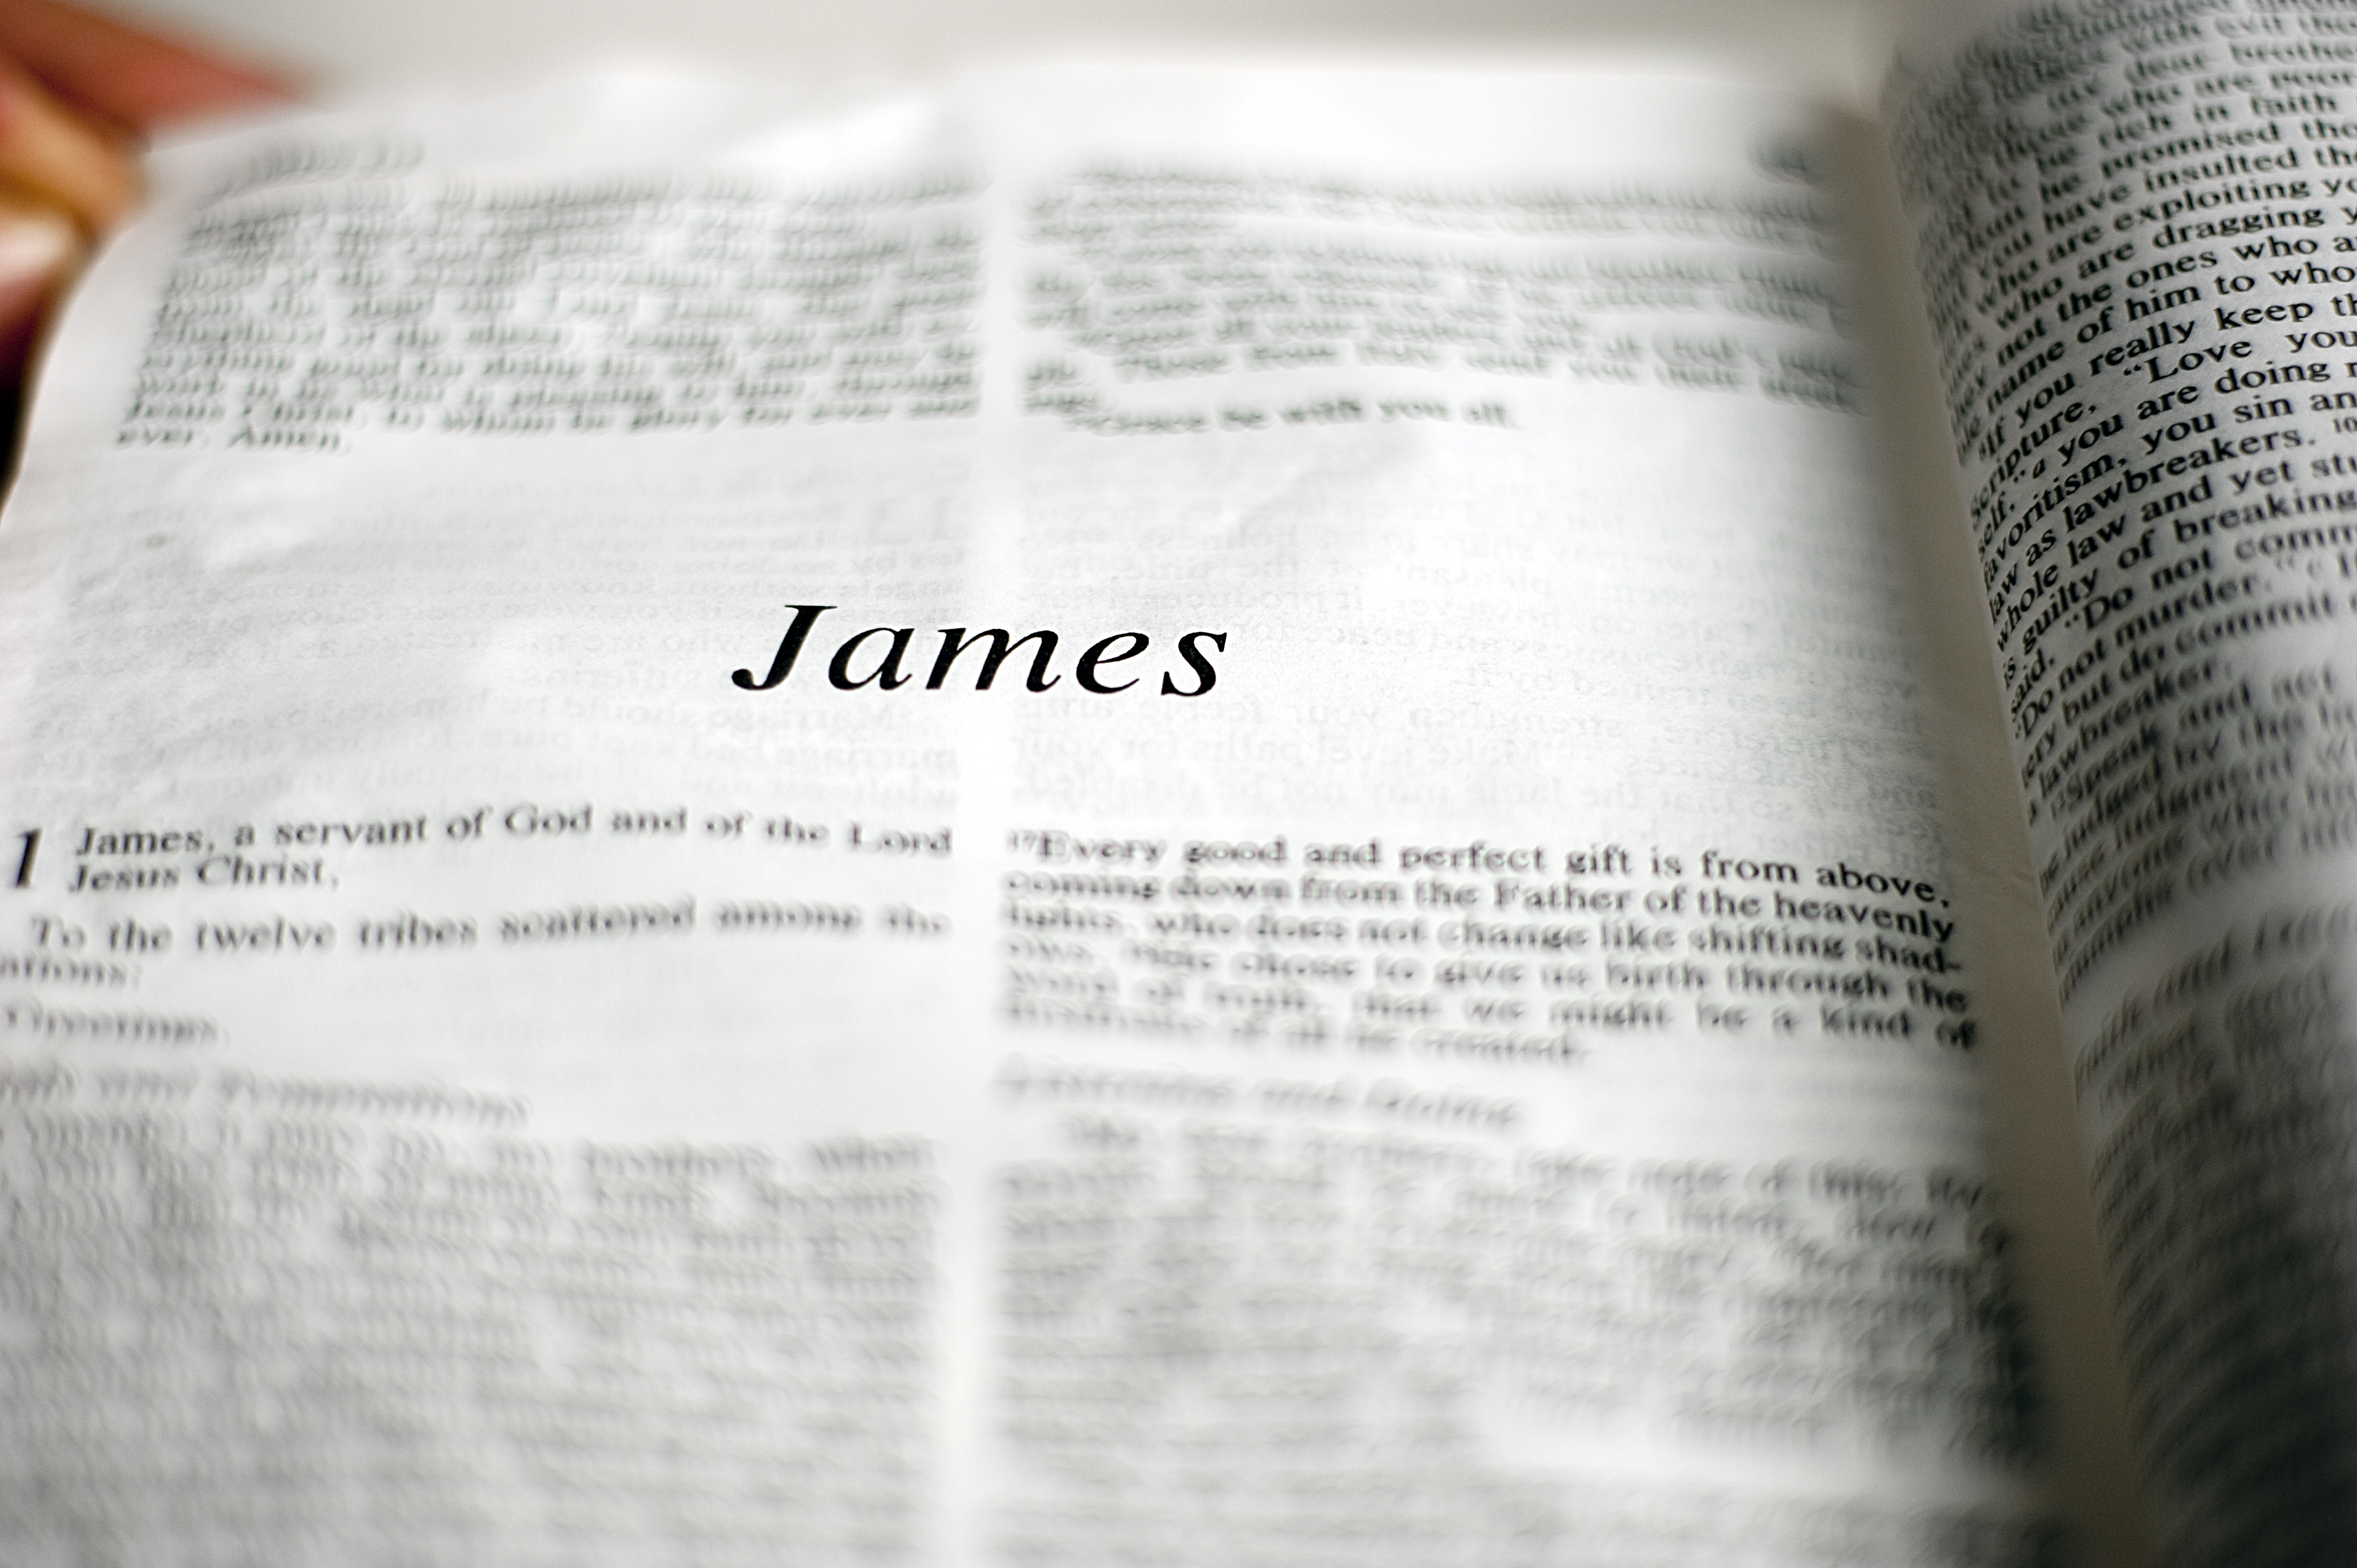 What Seniors Moving into Assisted Living Can Learn from the Book of James